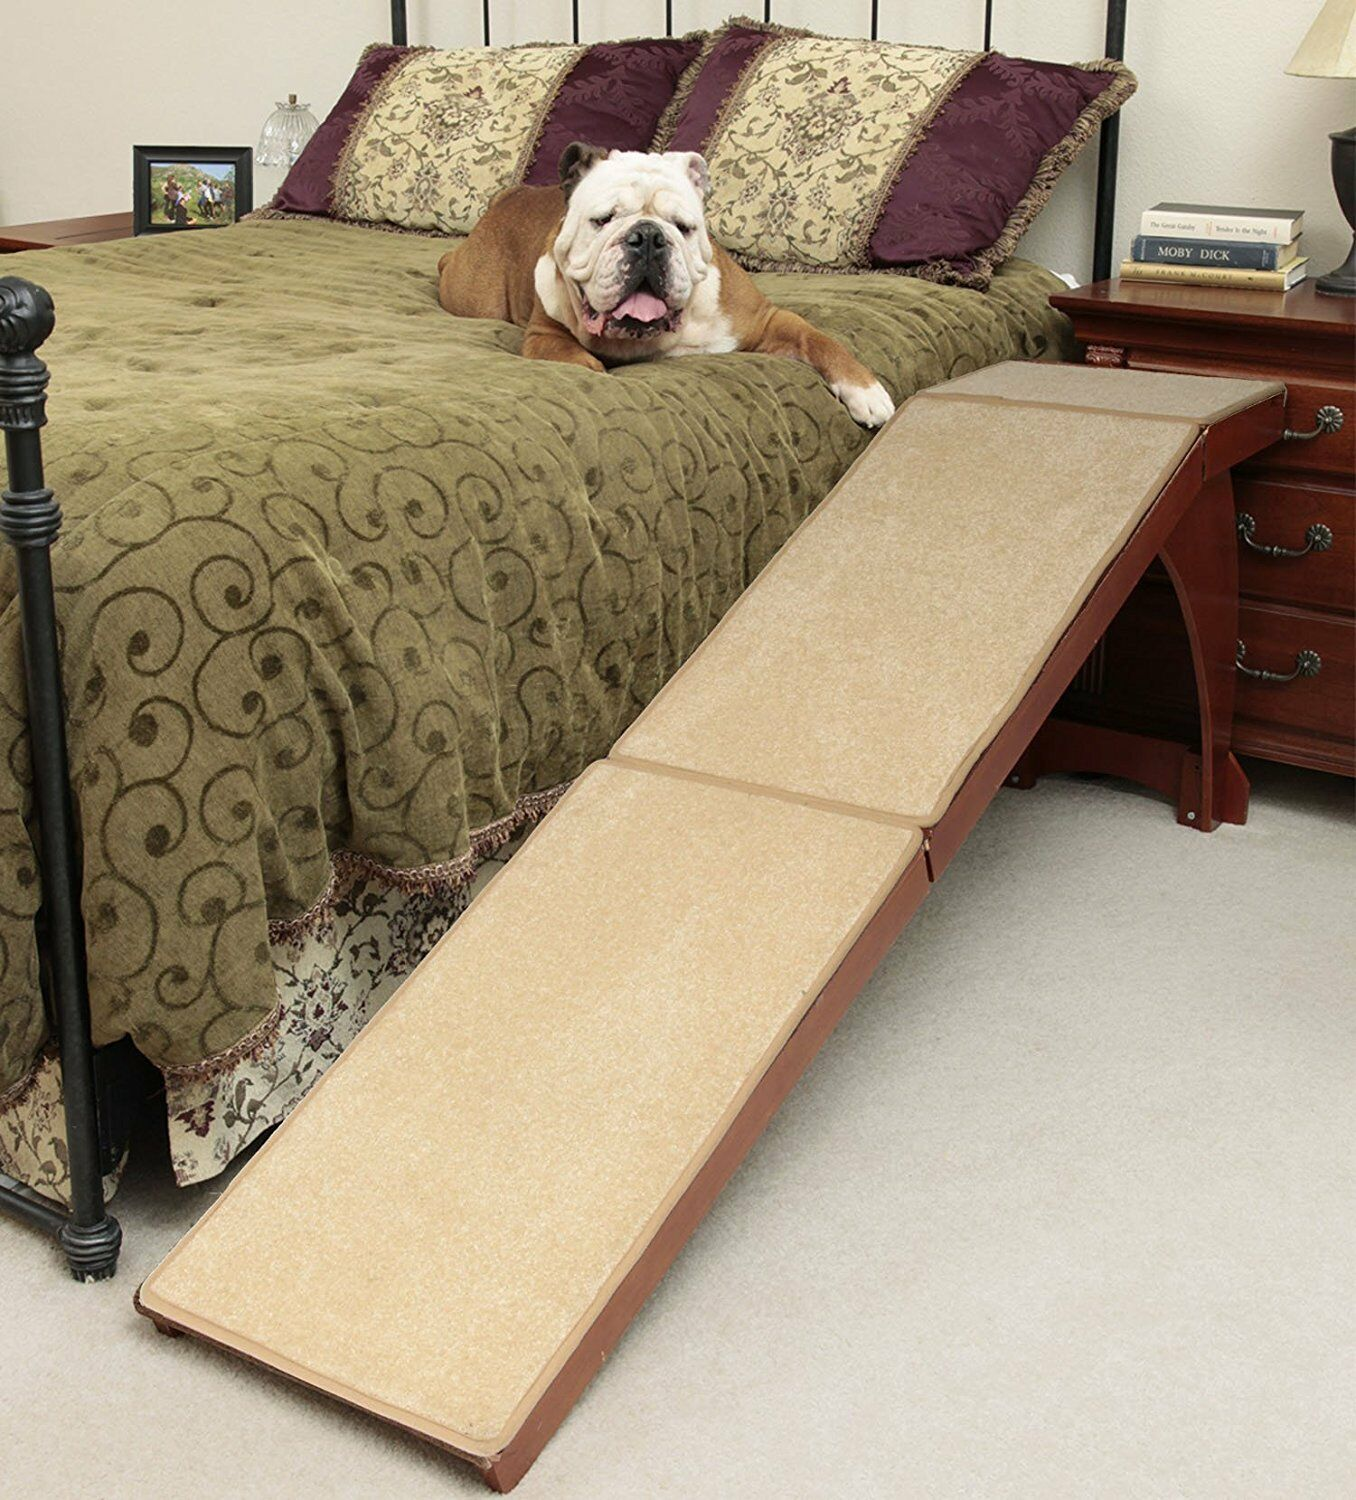 Pet Dog Ramp Stairs For High Beds Bedside Doggy Wood Carpet